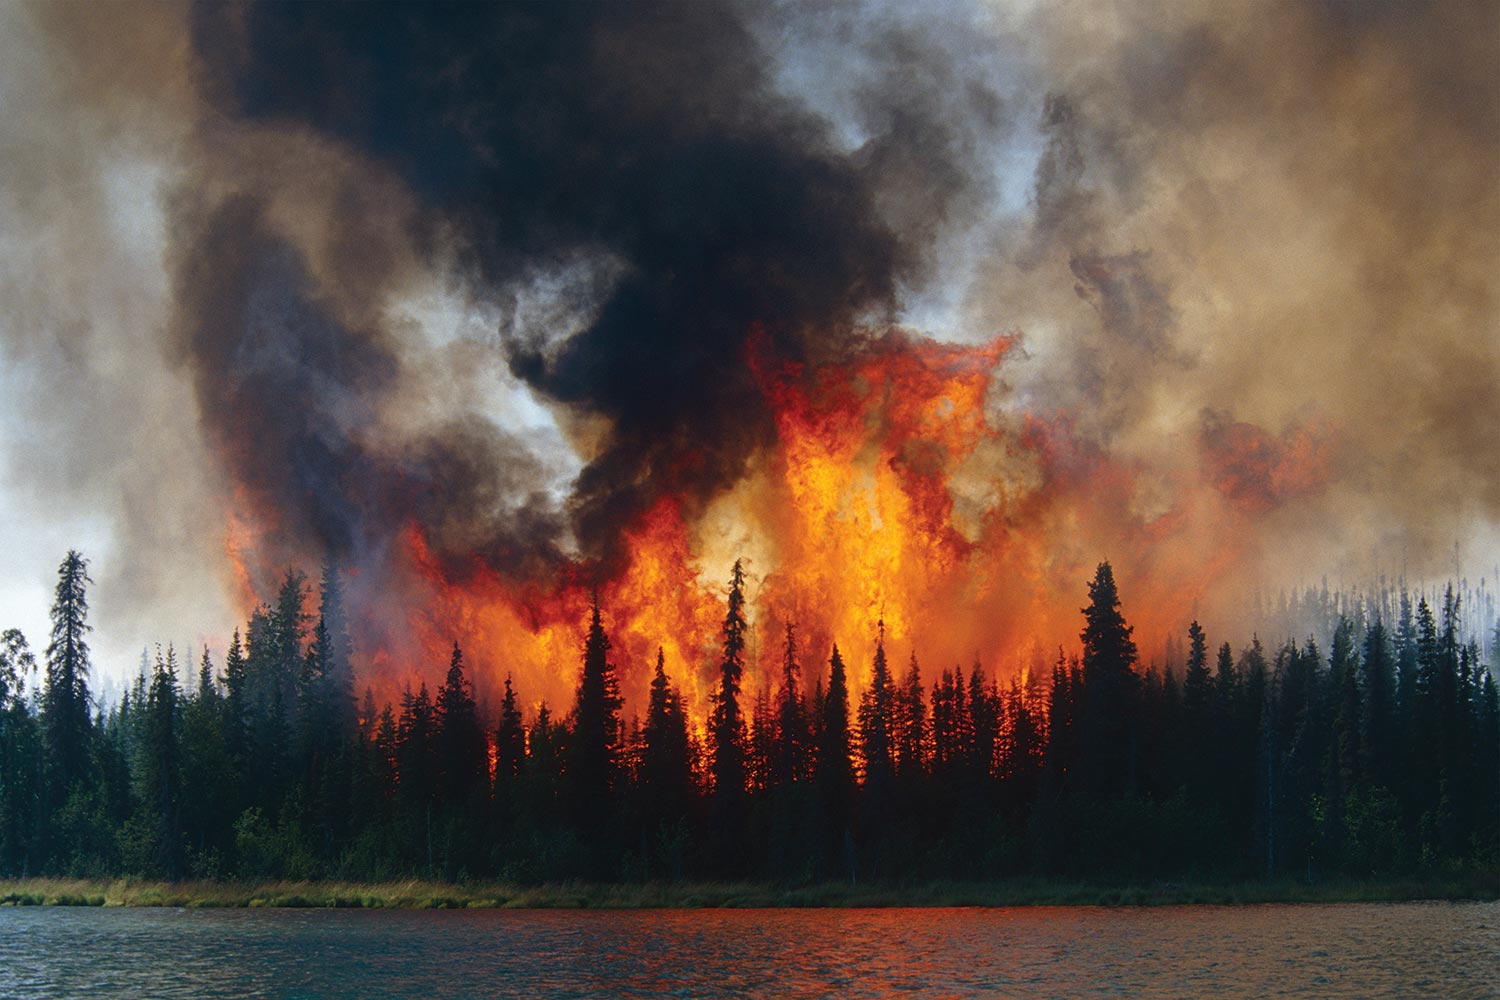 effects of wildfires on forest ecosystems essay